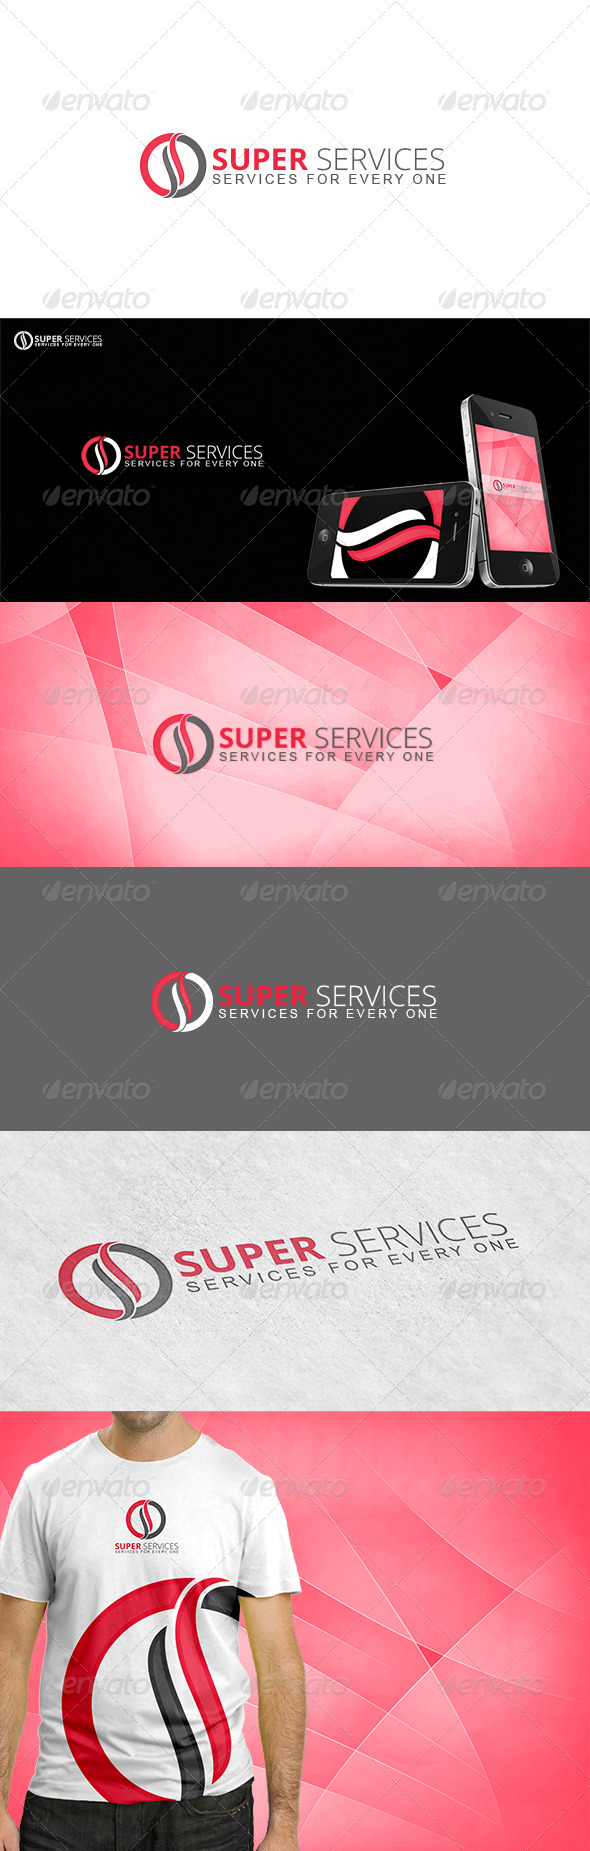 GraphicRiver Super Services 7830161